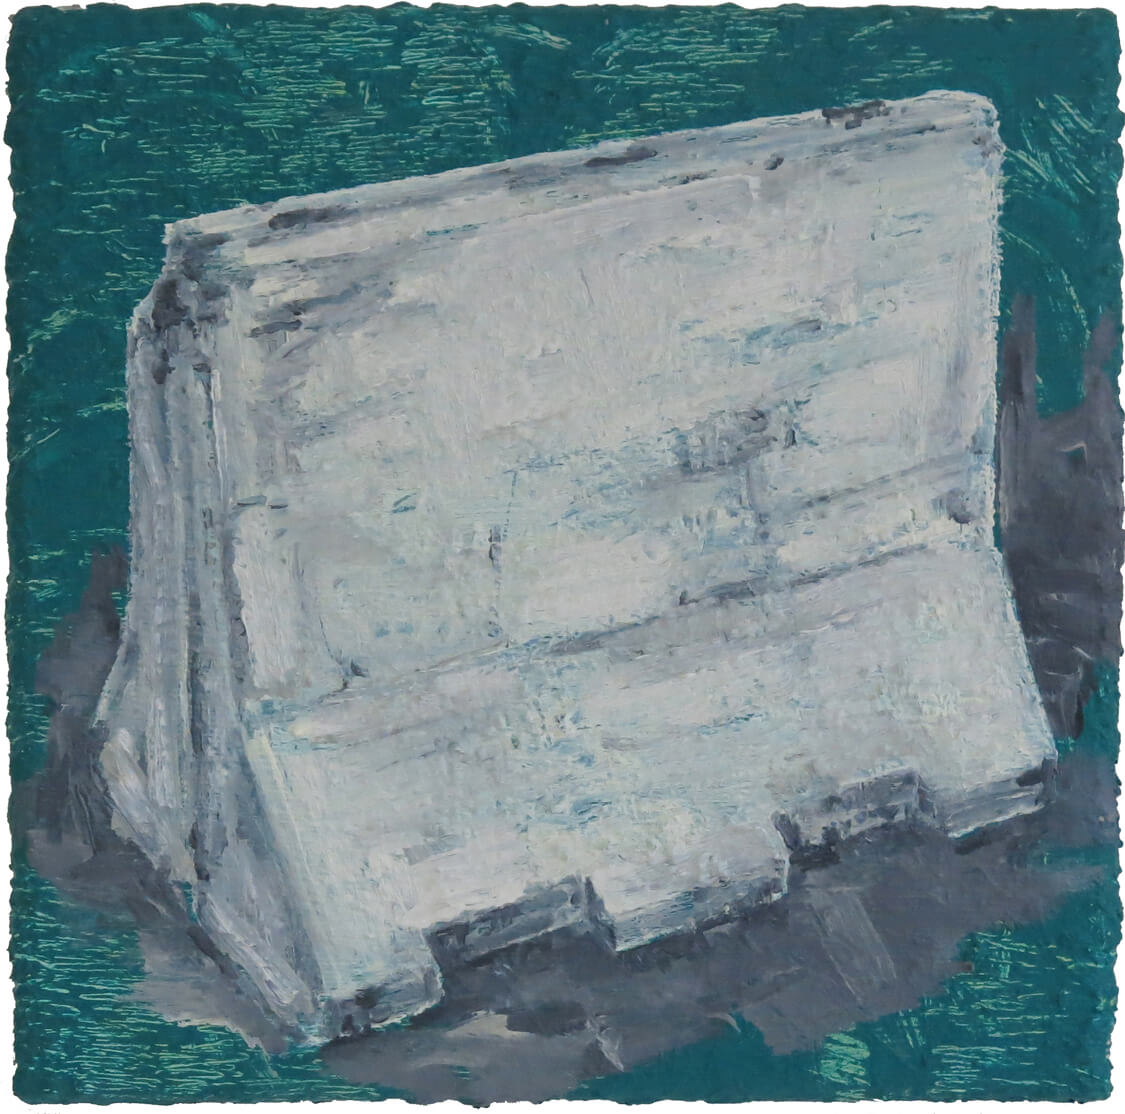 Jersey Barrier I - Oil on Canvas, 50 x 50 cm, 2019